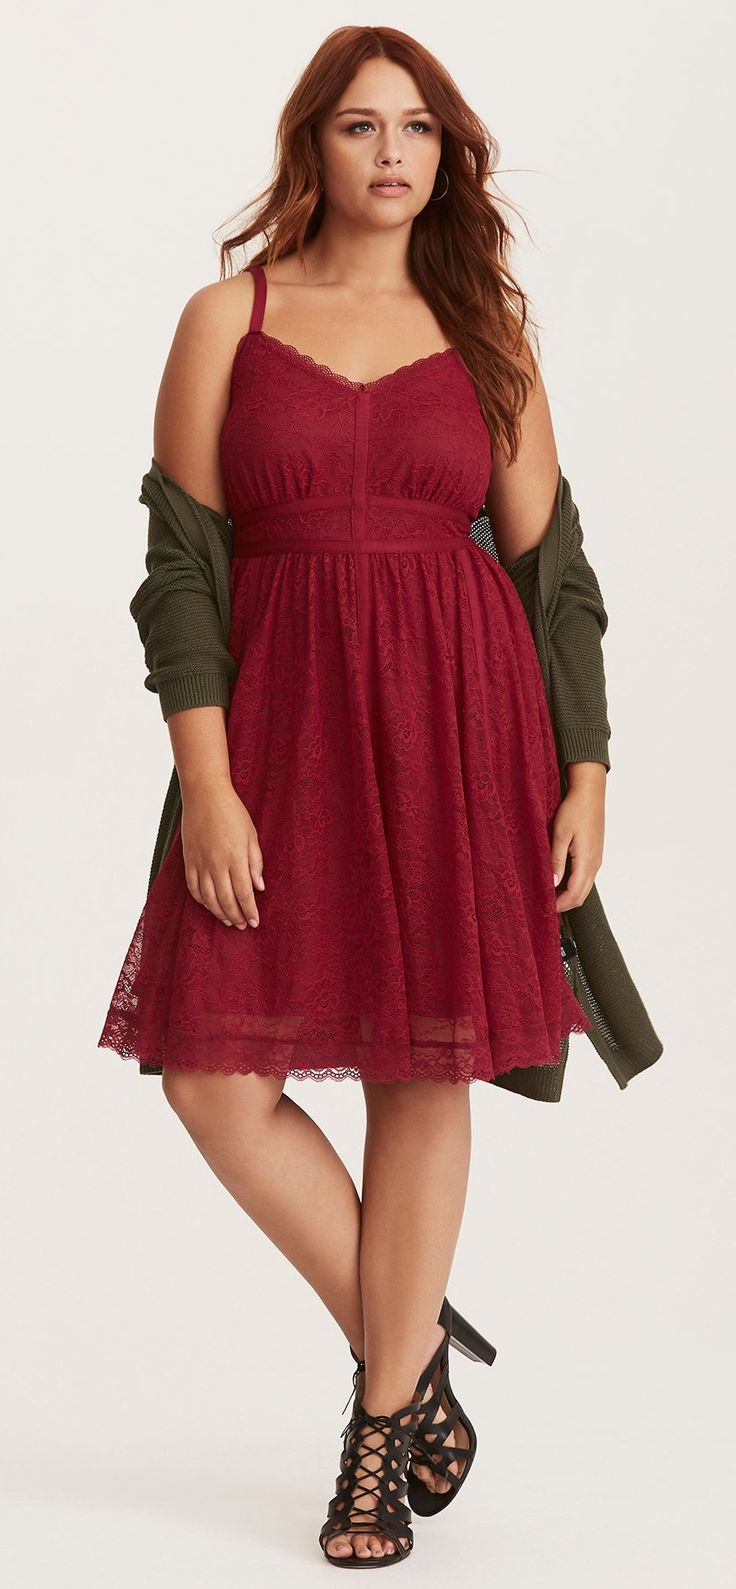 Plus Size Skater Dress